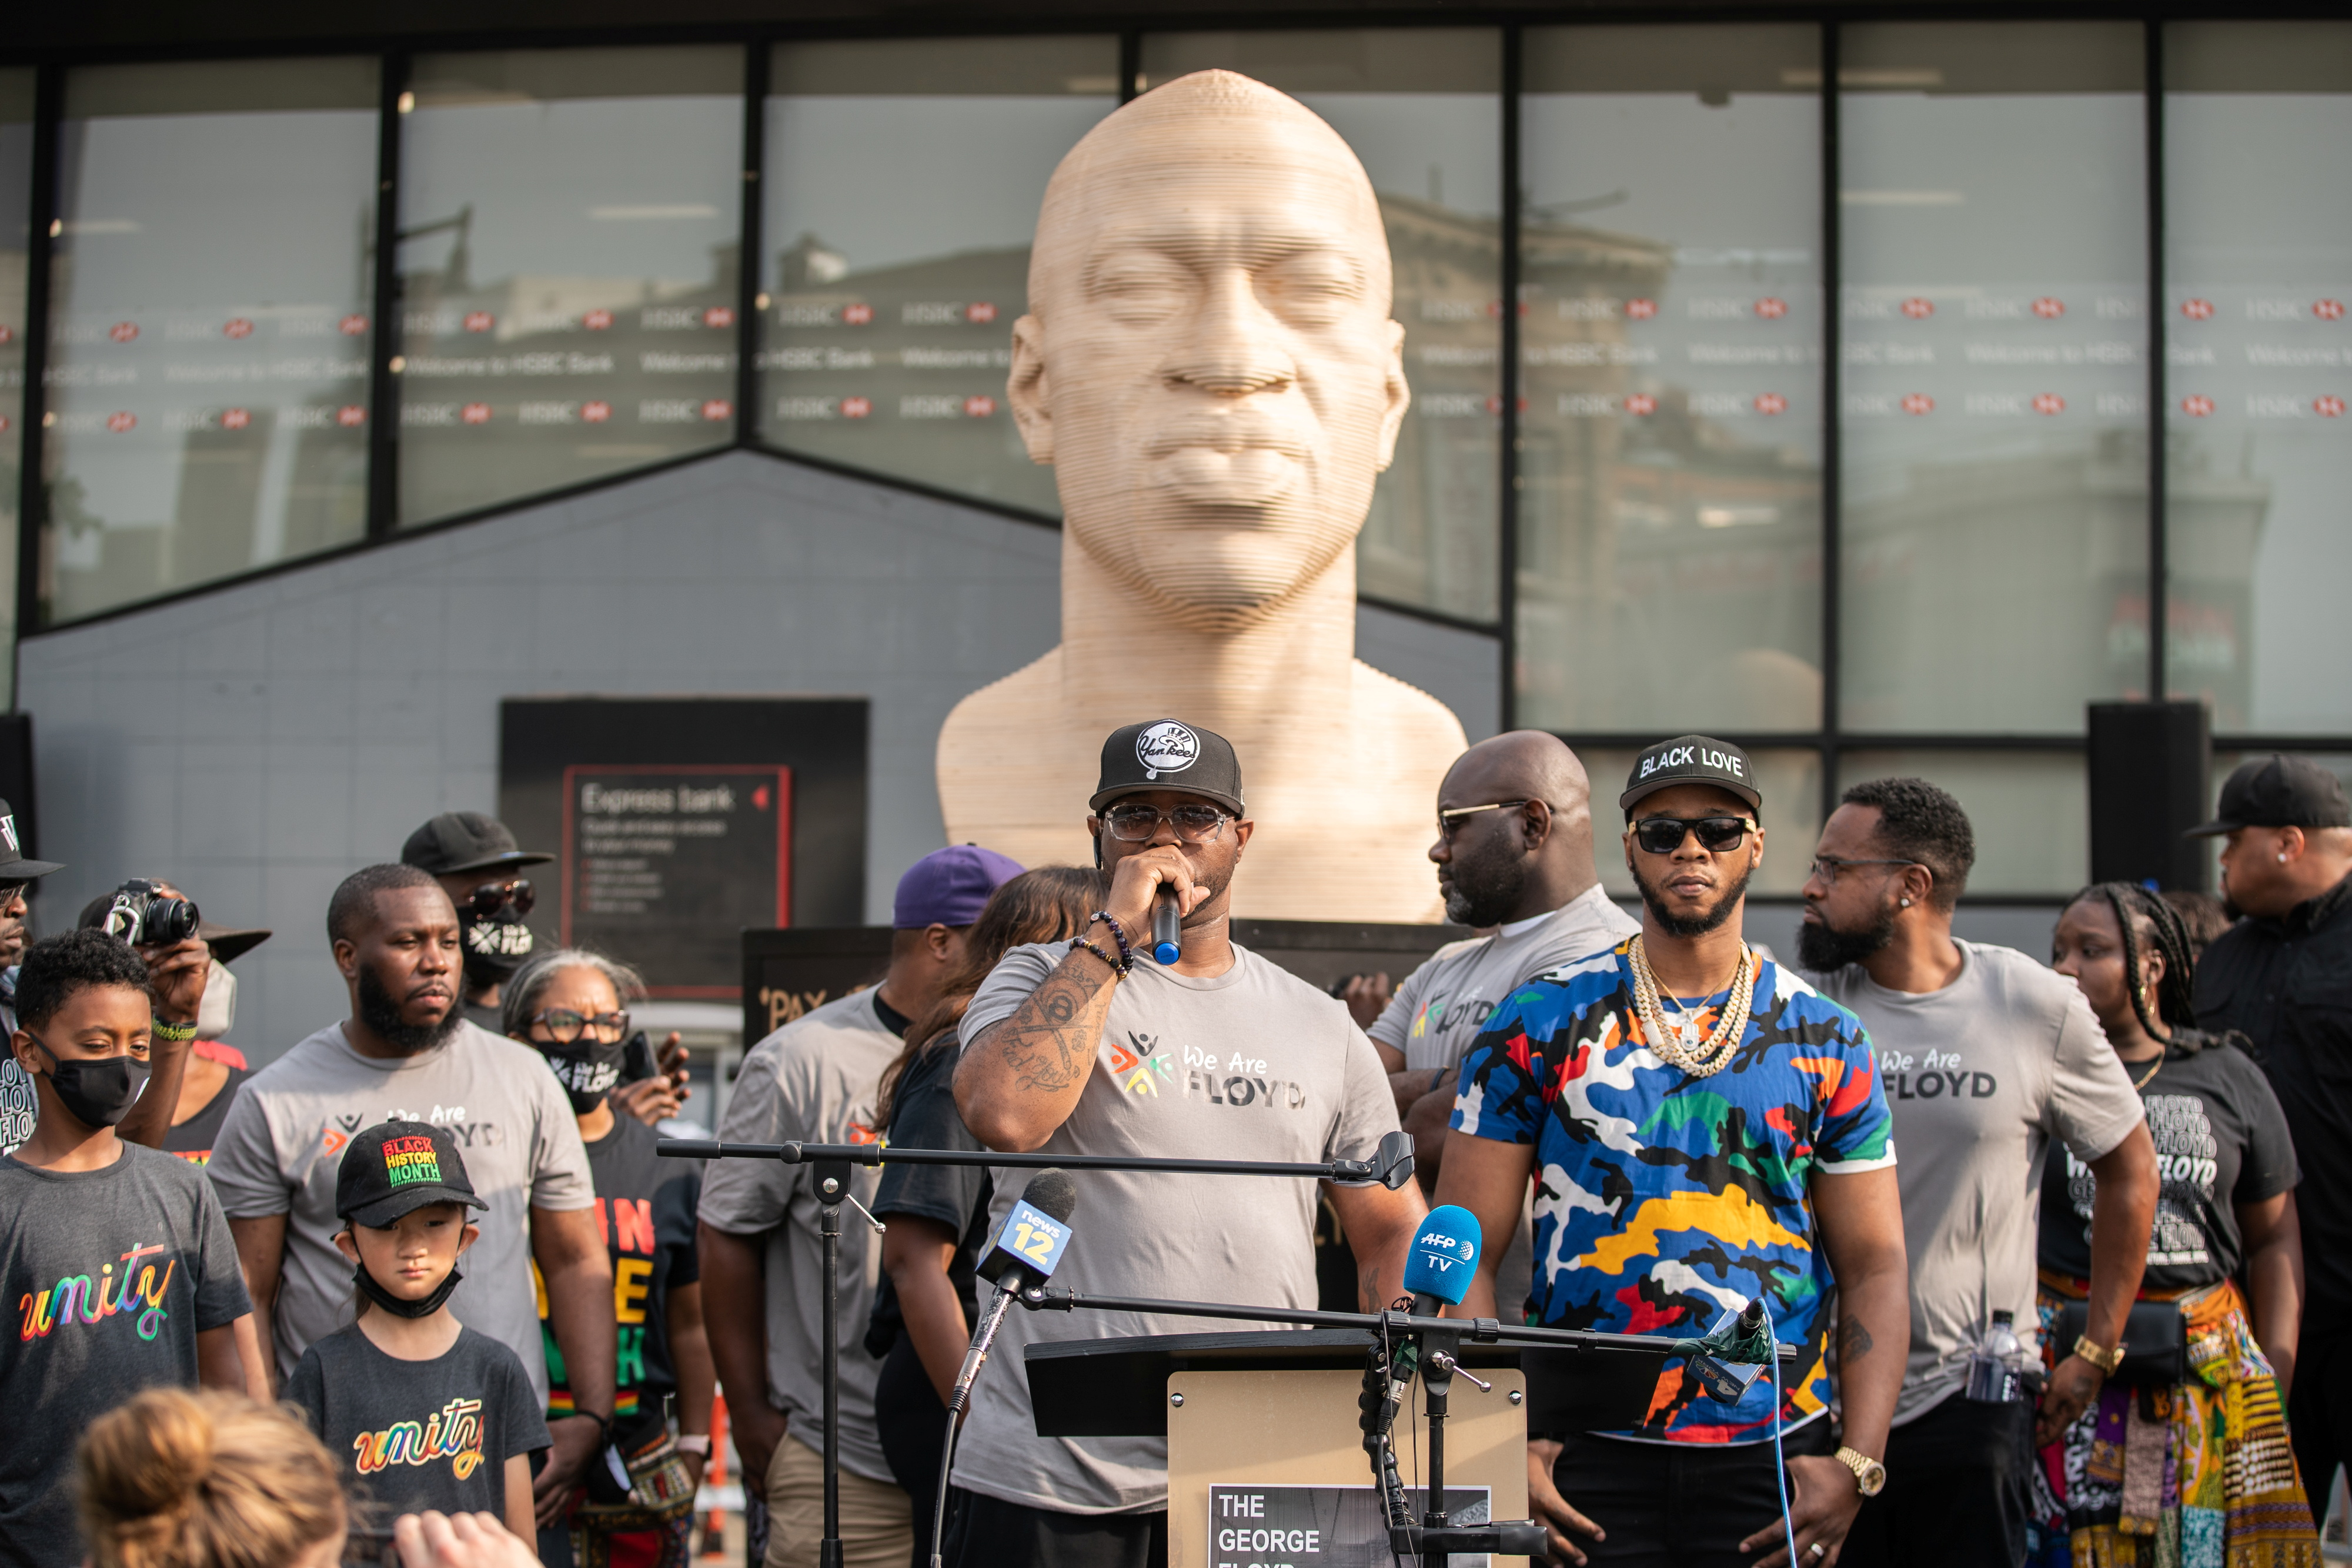 Terrence Floyd, brother of the late George Floyd who was killed by a police officer, speaks during the unveiling event of Floyd's statue, as part of Juneteenth celebrations, in Brooklyn, New York, U.S., June 19, 2021. REUTERS/Jeenah Moon